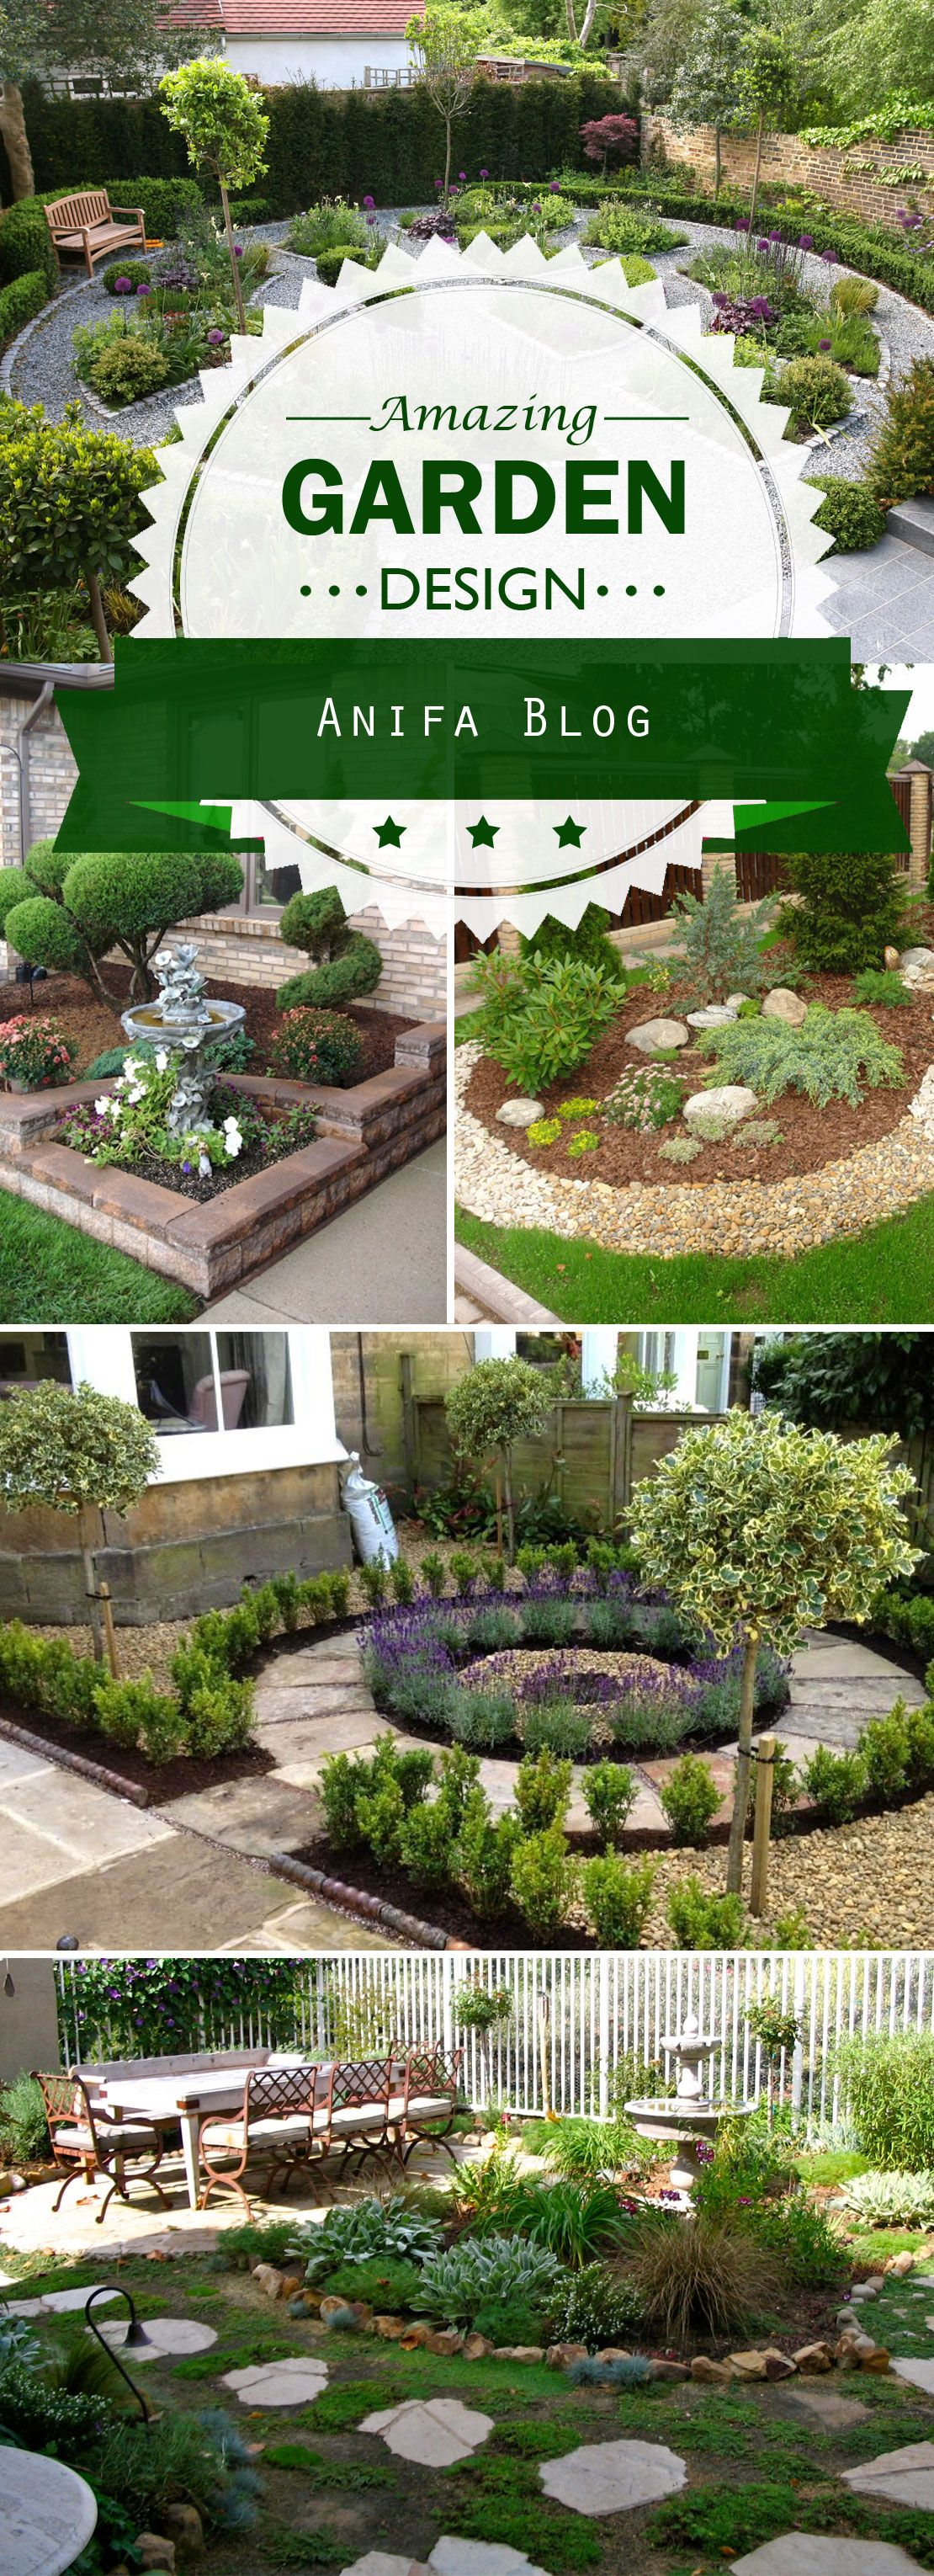 House garden landscape   Amazing Garden Landscaping Ideas and Designs  The Manor House